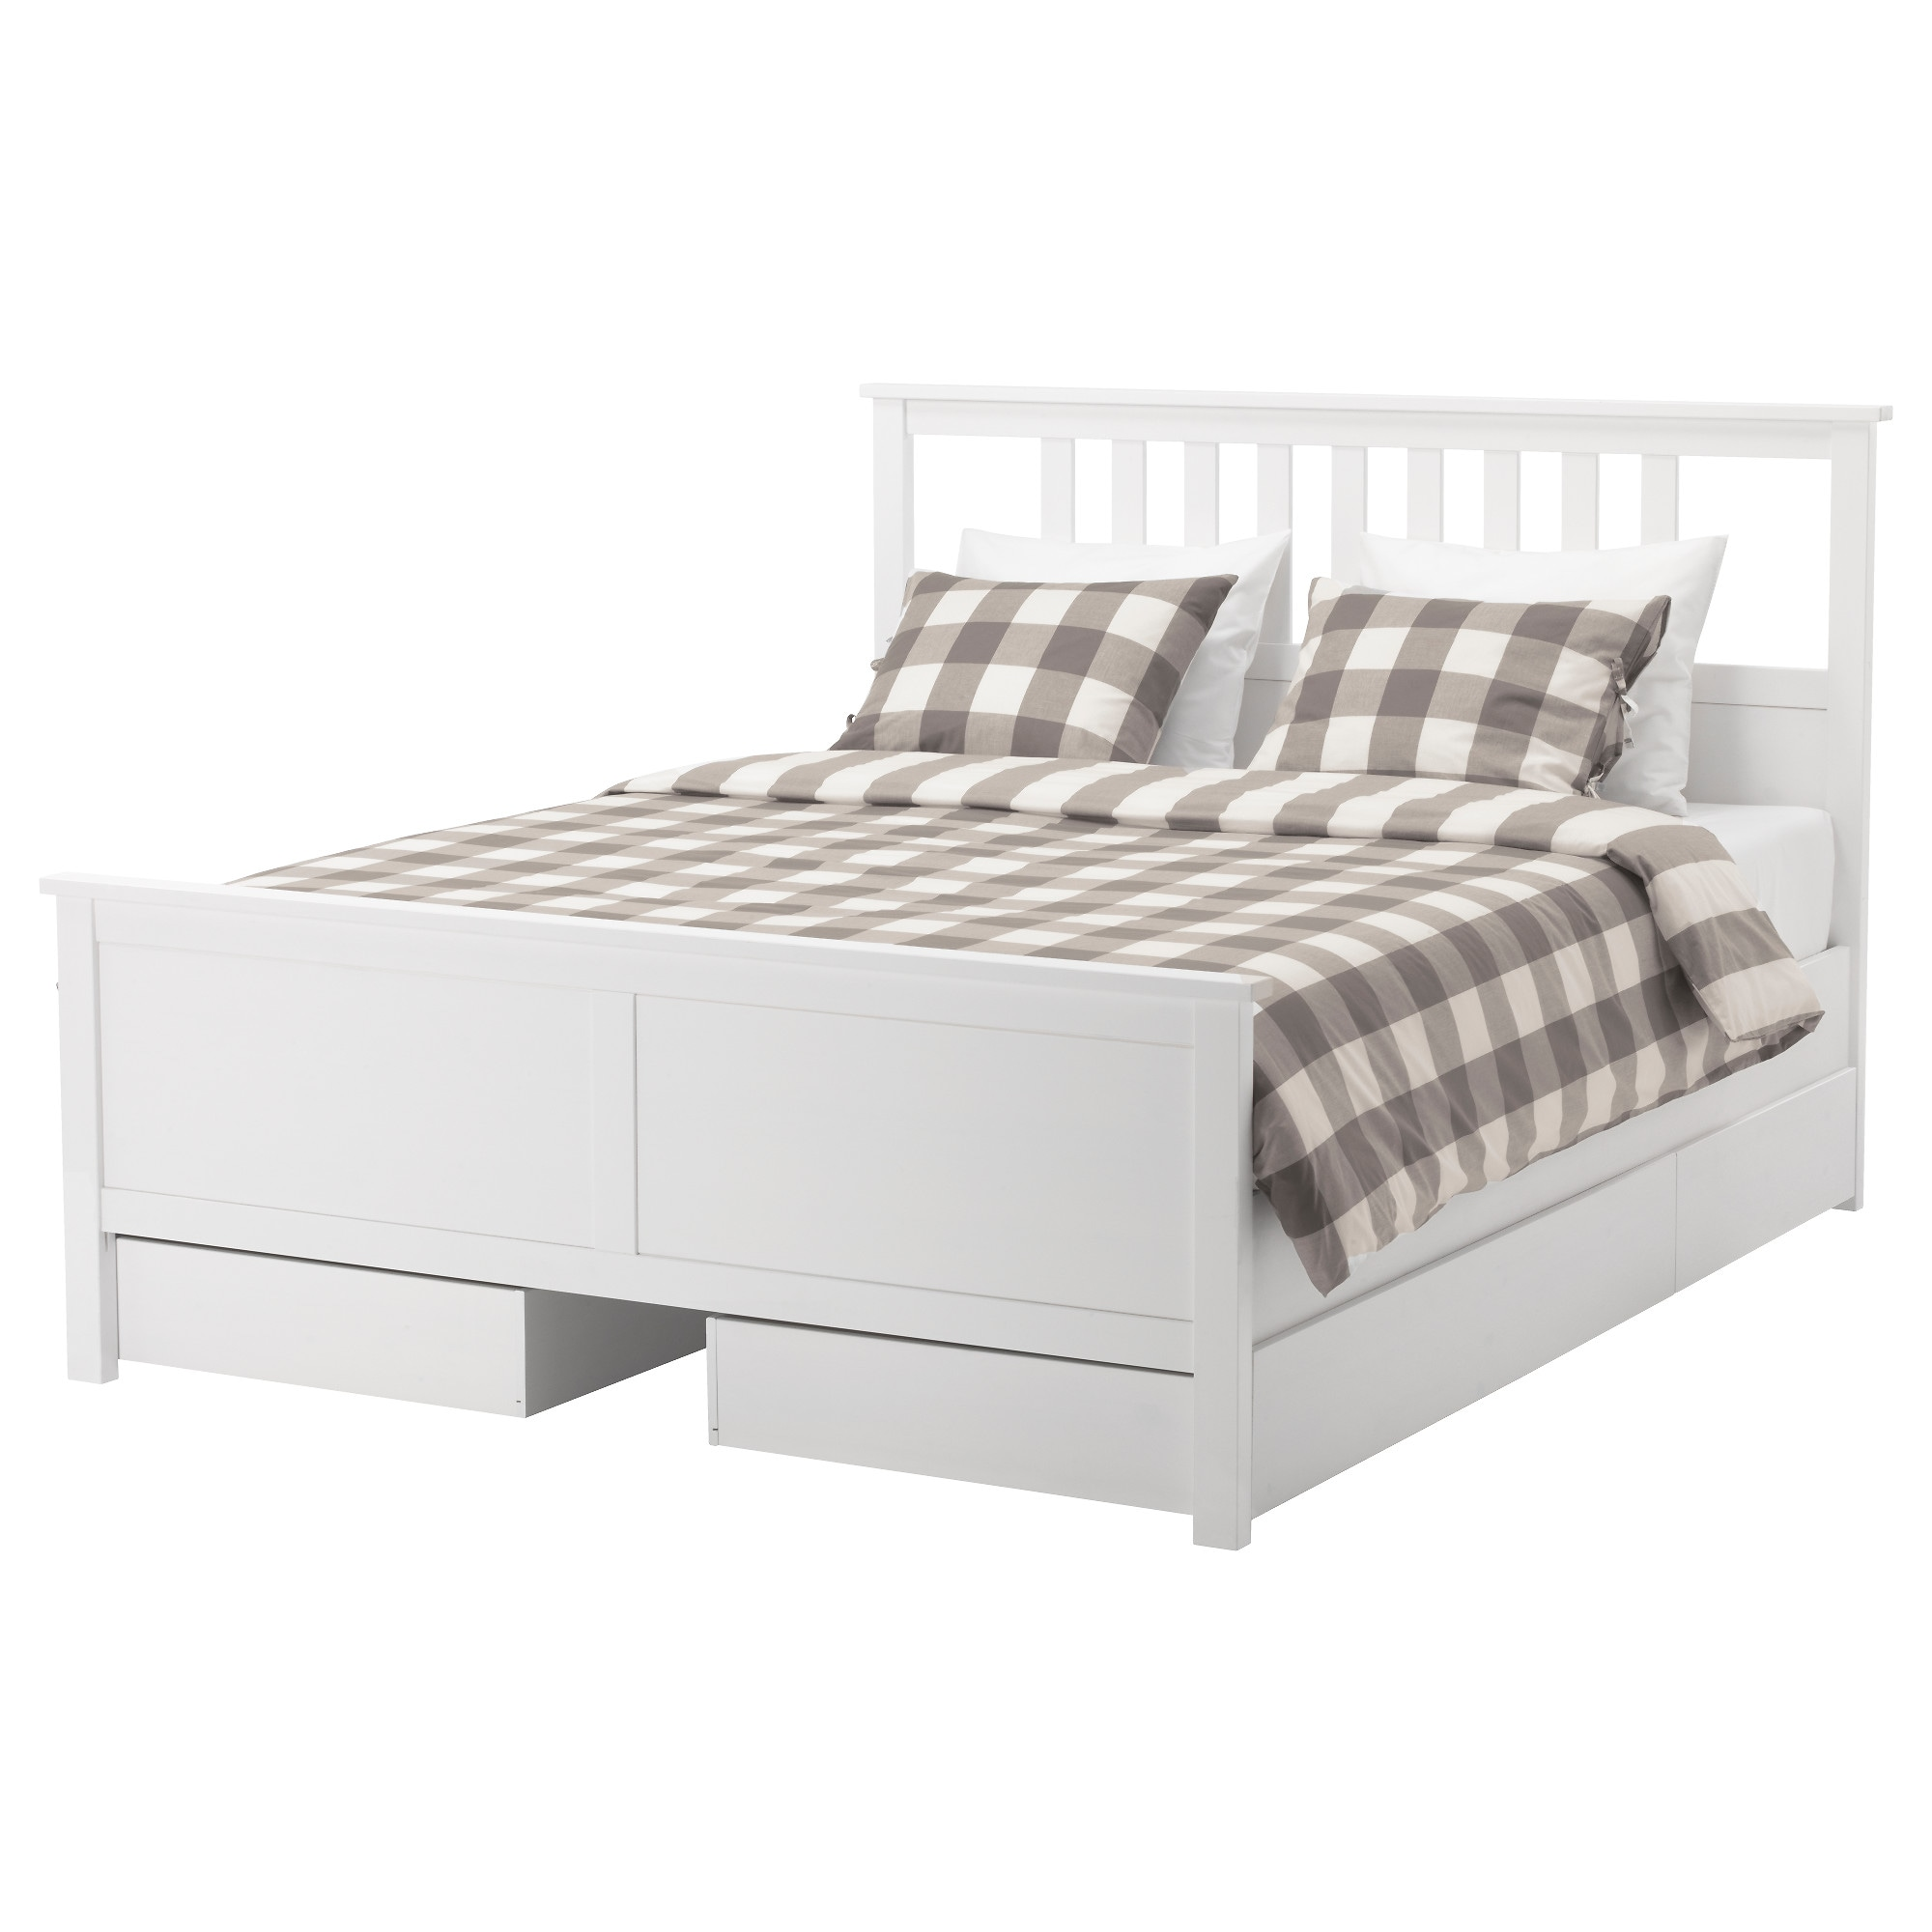 HEMNES Bed frame with 4 storage boxes   Queen  Lur y slatted bed base   IKEA. HEMNES Bed frame with 4 storage boxes   Queen  Lur y slatted bed